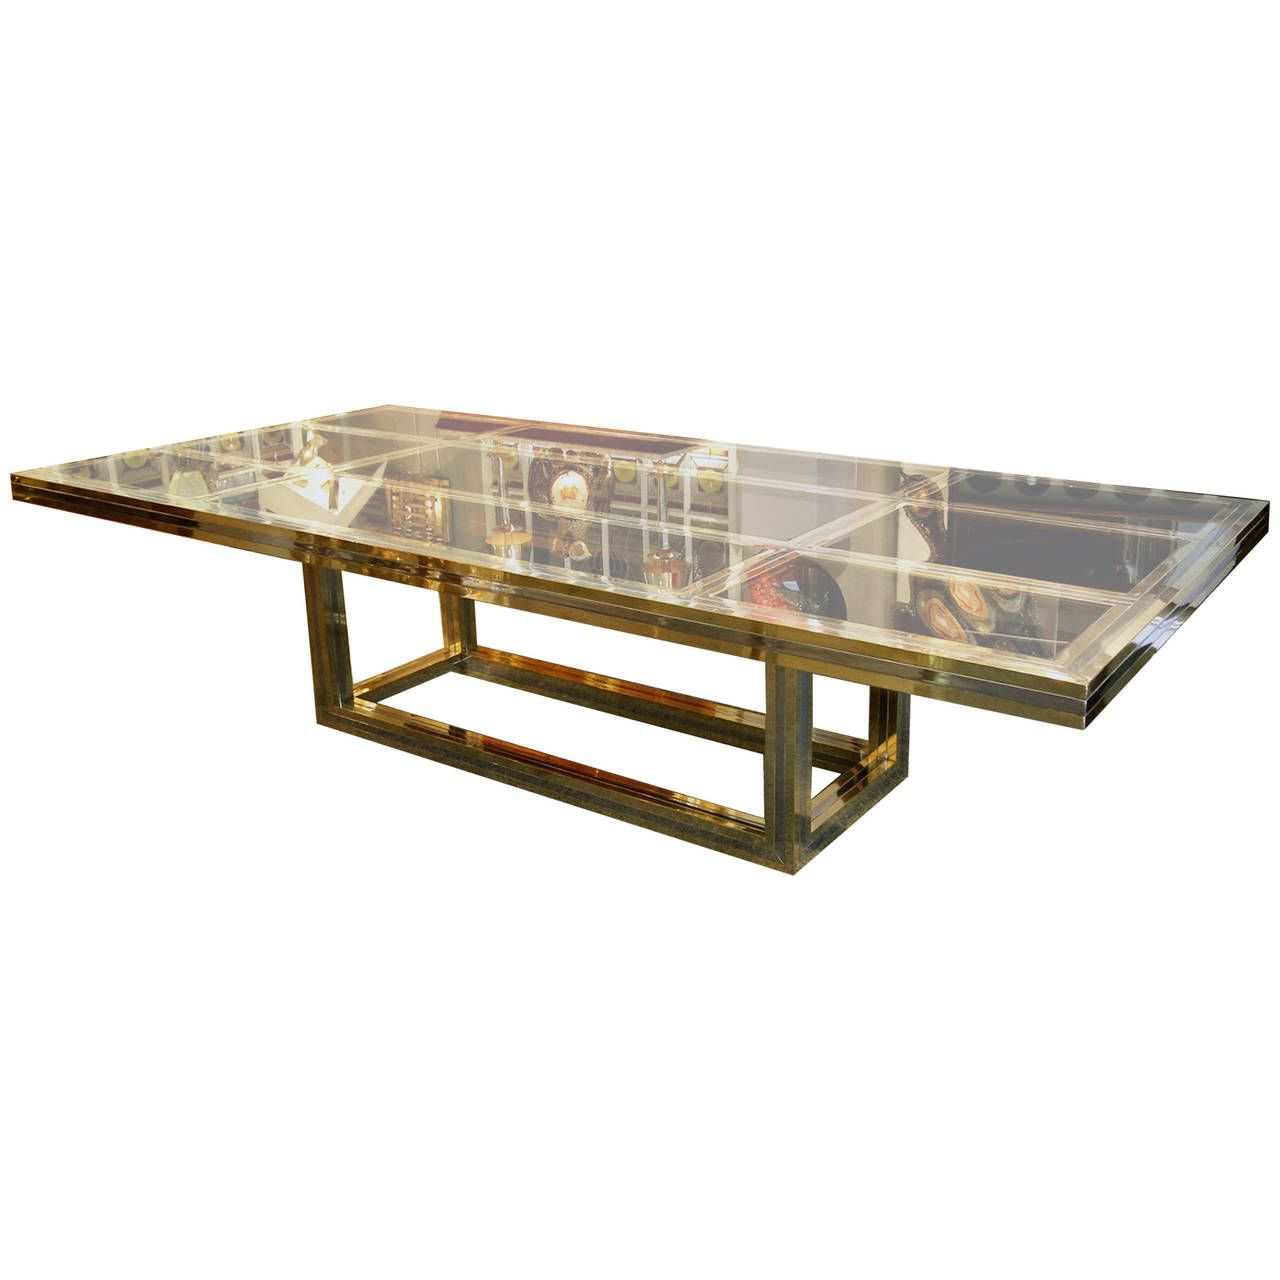 Very Chic and Large Dining Table by Romeo Rega, Italy, 1970 | From a unique collection of antique and modern dining room tables at https://www.1stdibs.com/furniture/tables/dining-room-tables/